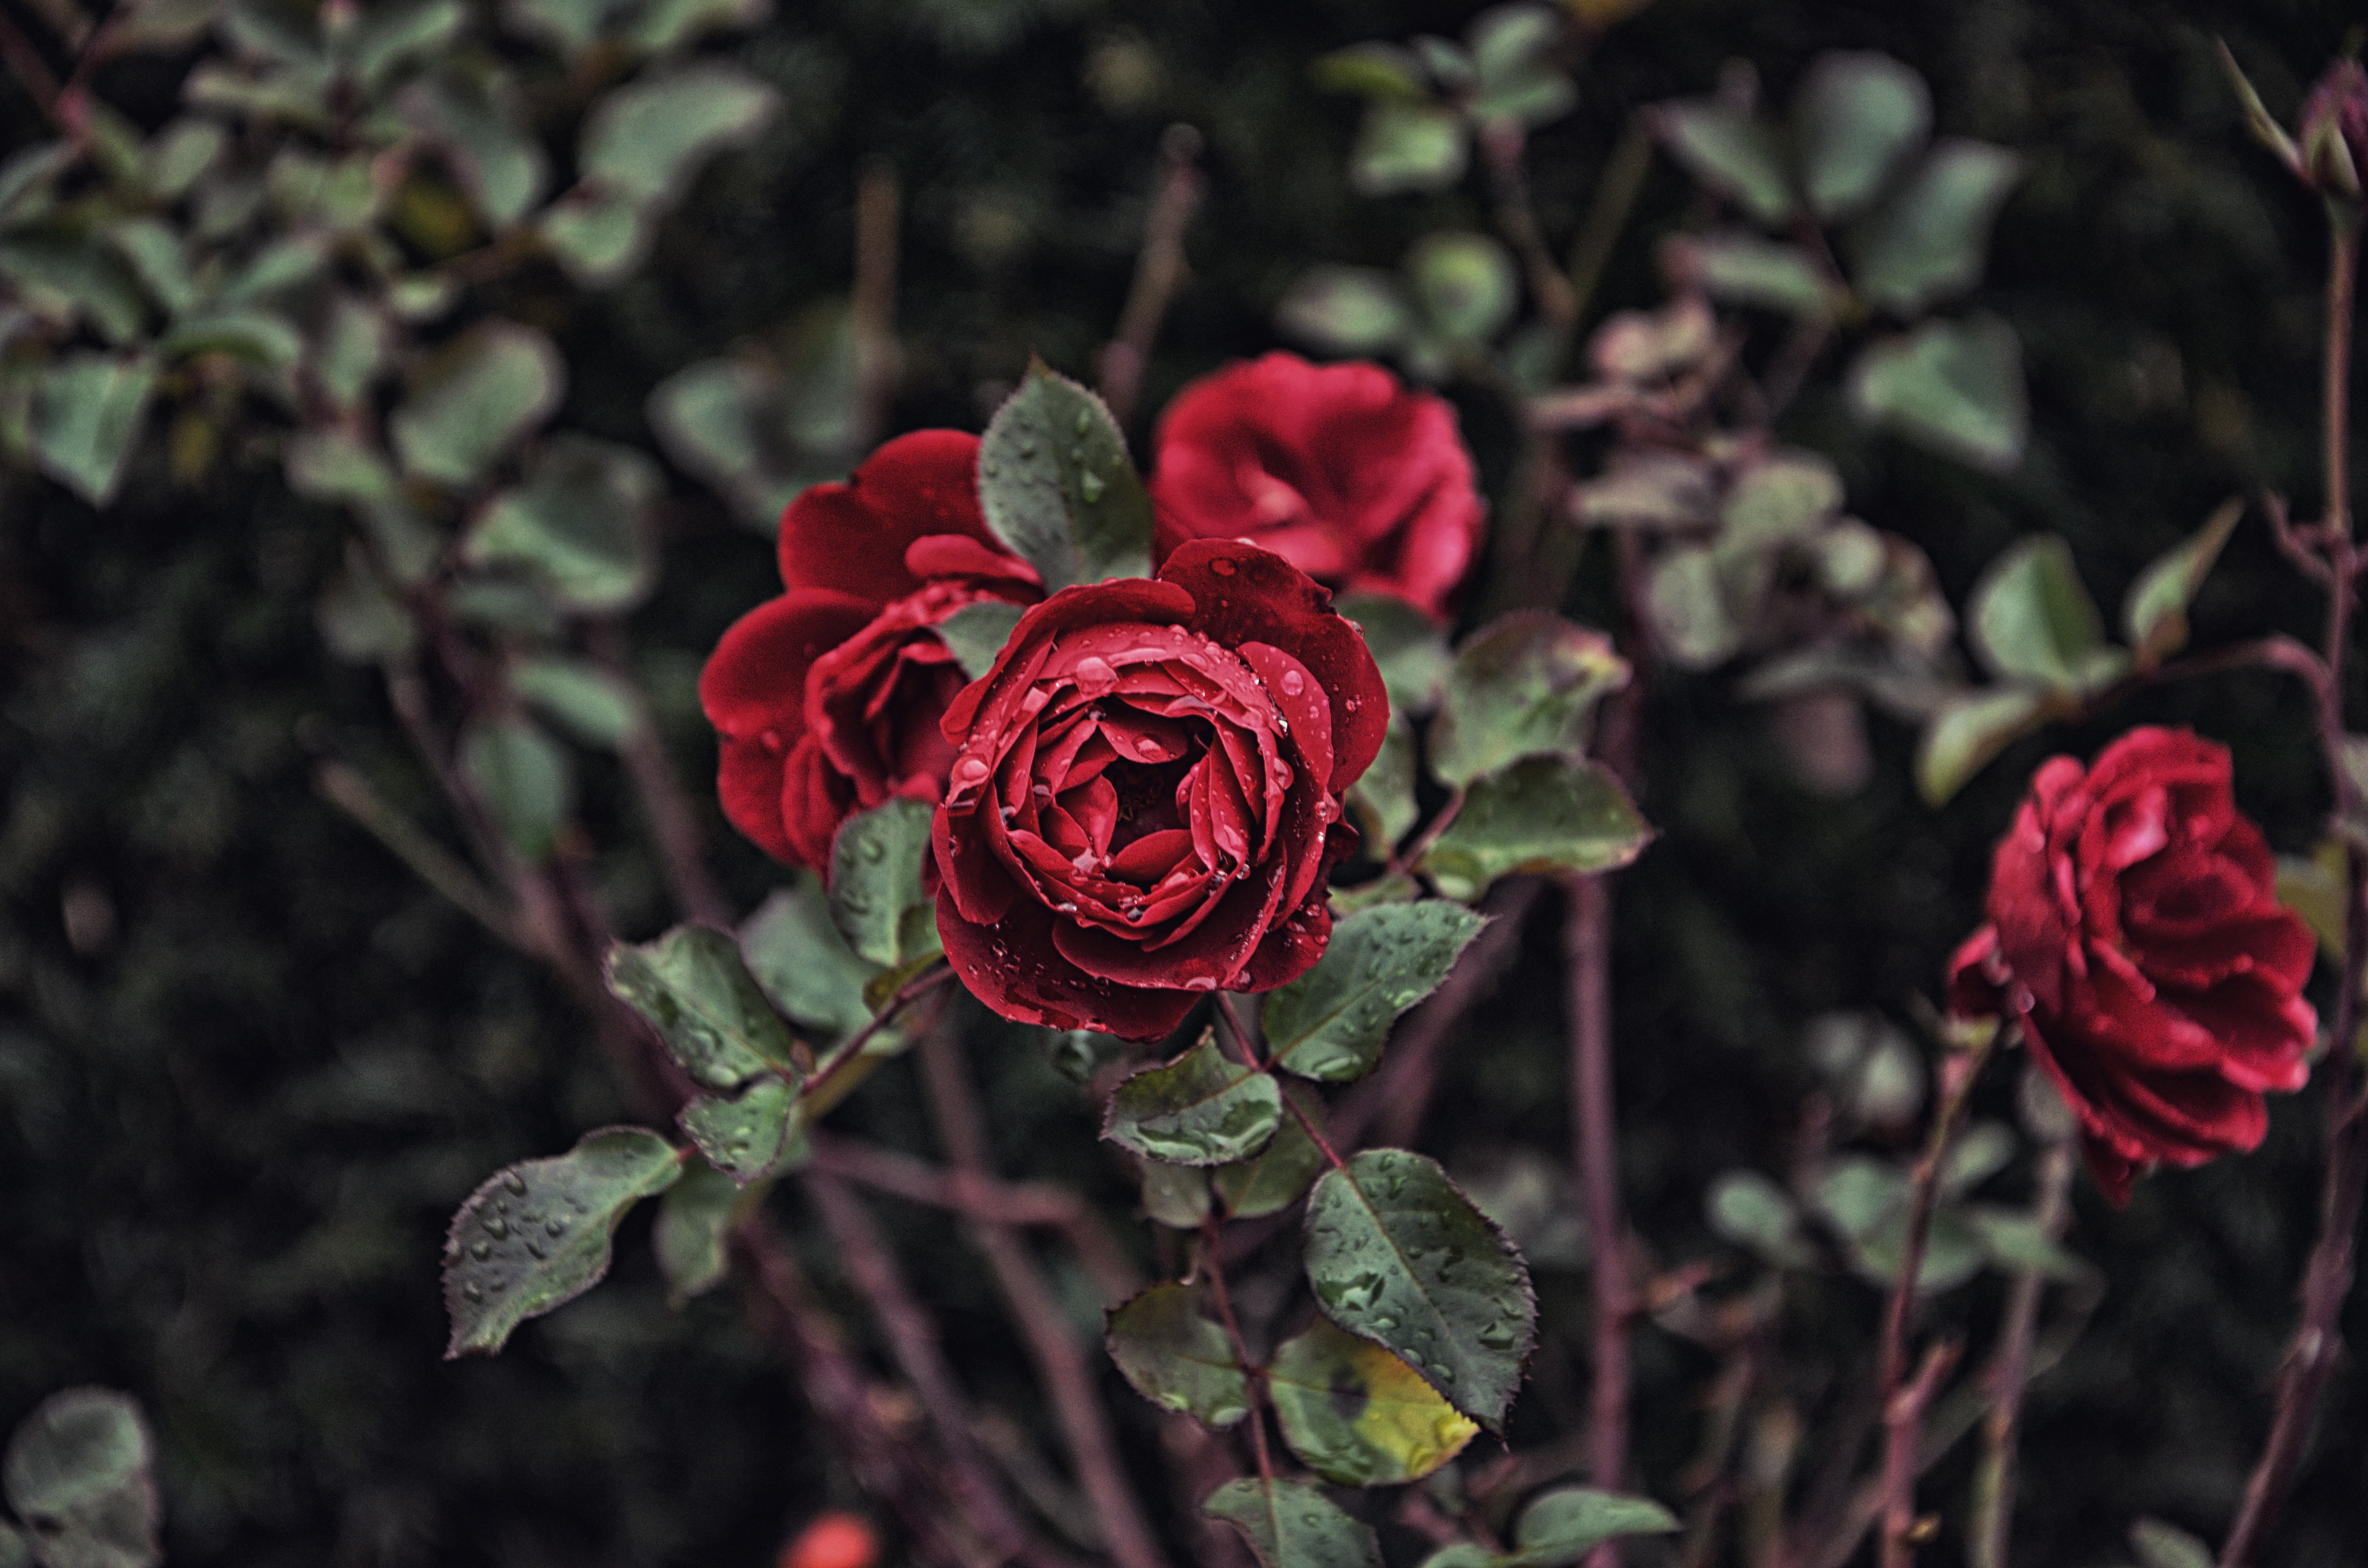 82248 download wallpaper Flowers, Drops, Bush, Rose Flower, Rose, Bud, Blur, Smooth screensavers and pictures for free